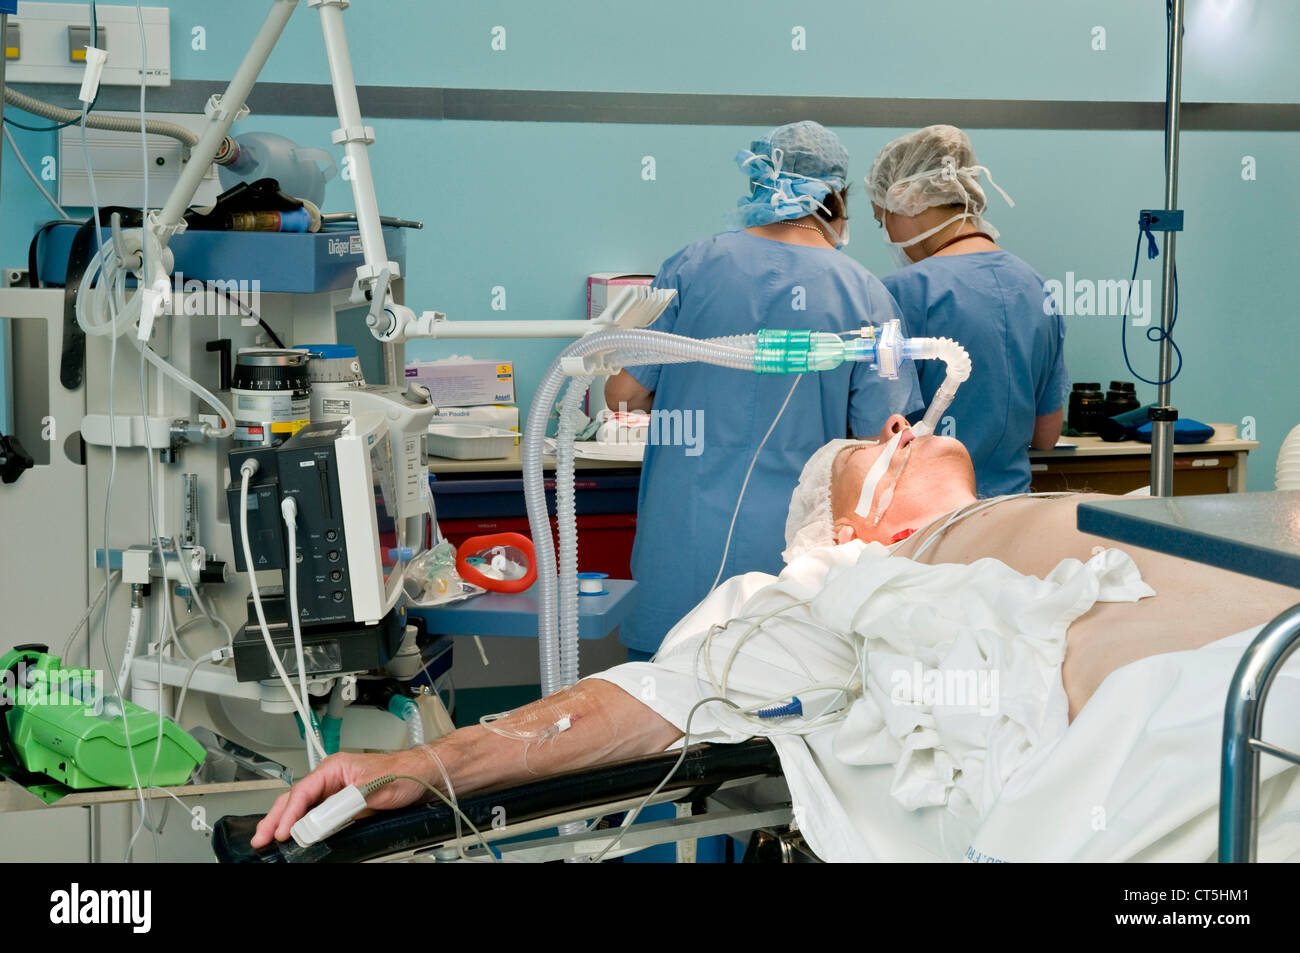 GENERAL ANESTHESIA - Stock Image